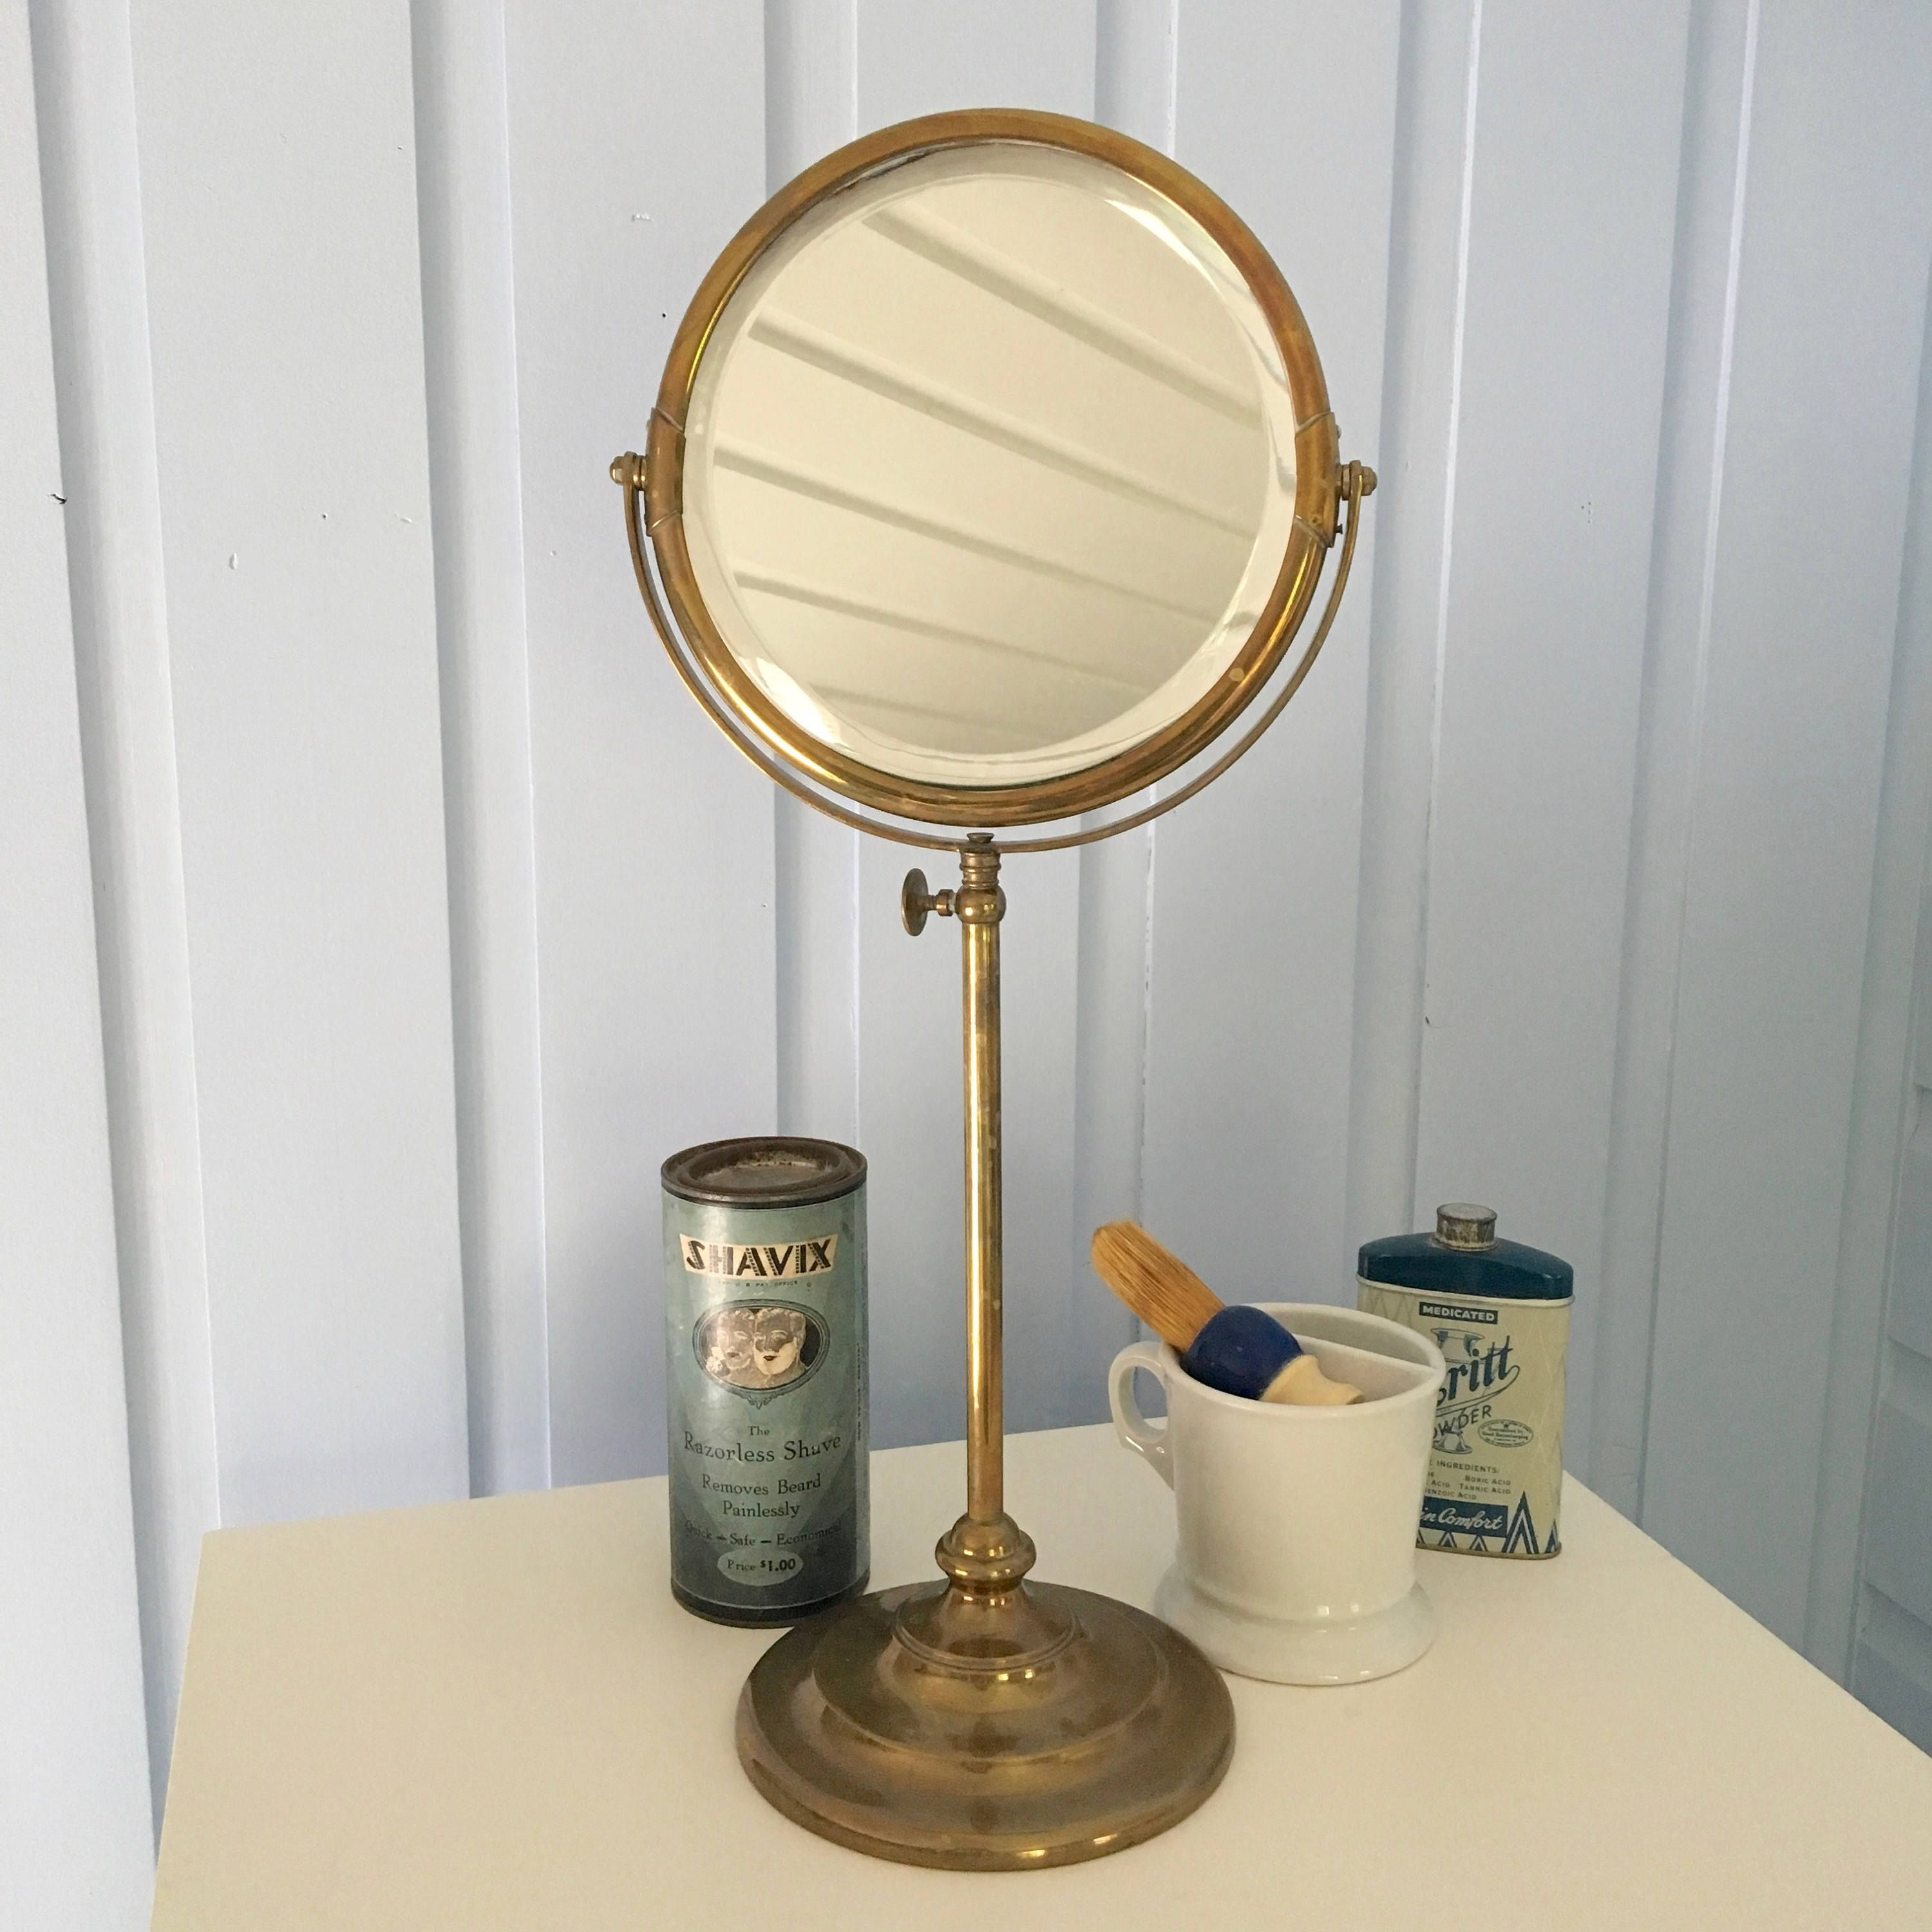 Antique Brass Round Shaving Mirror Adjustable Height Beveled Edge Glass Vintage Early 1900s From Milkweedv Shaving Mirror Beveled Edge Mirror Vintage Mirrors